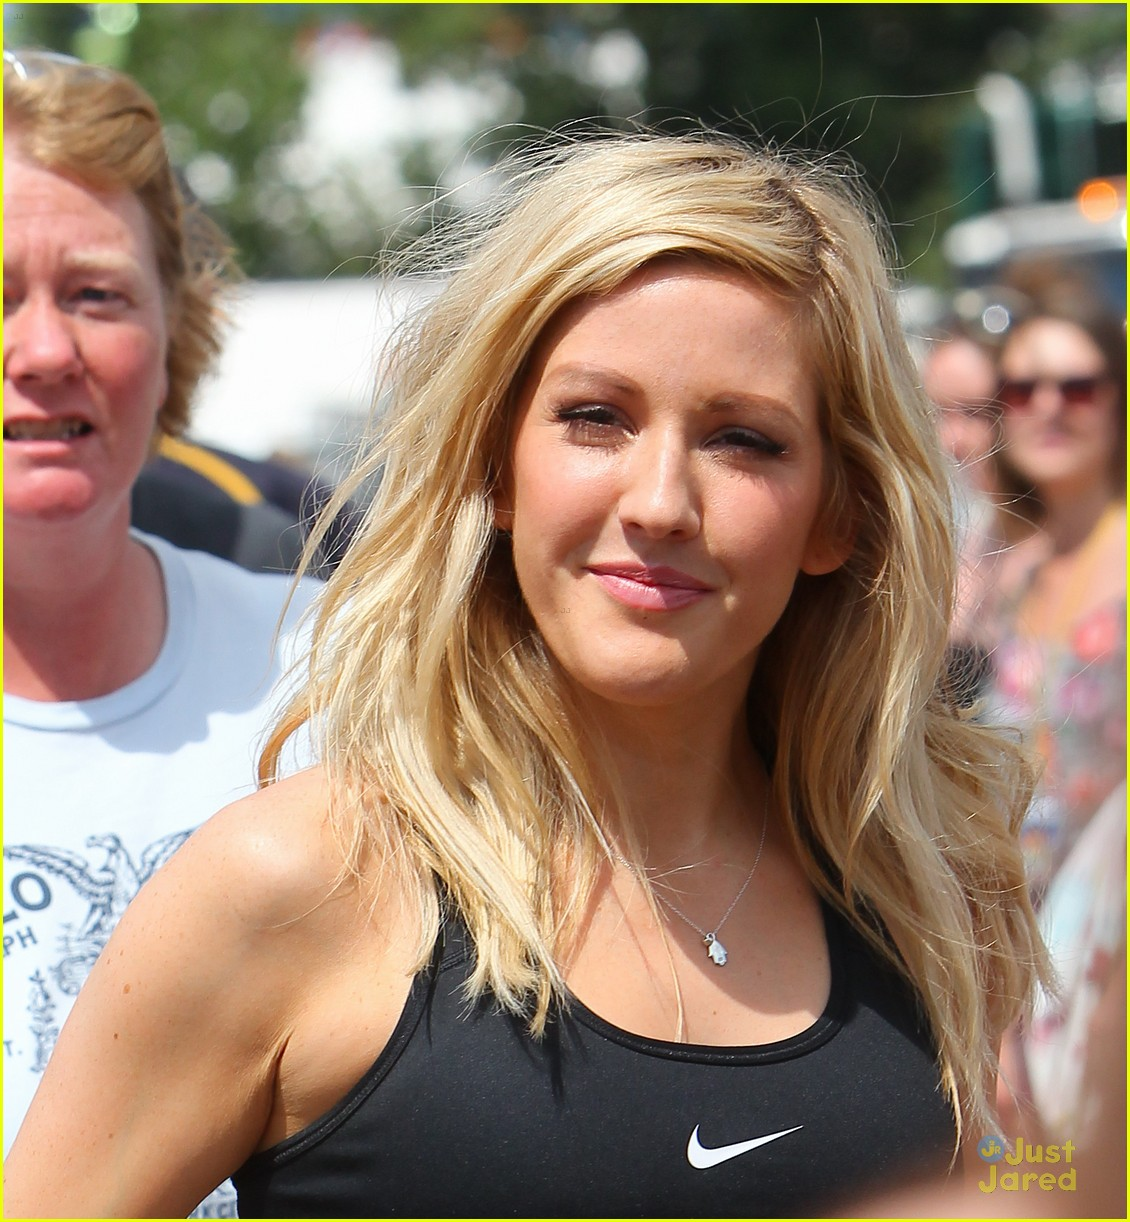 Fappening Ellie Goulding nudes (56 photos), Pussy, Hot, Twitter, butt 2018